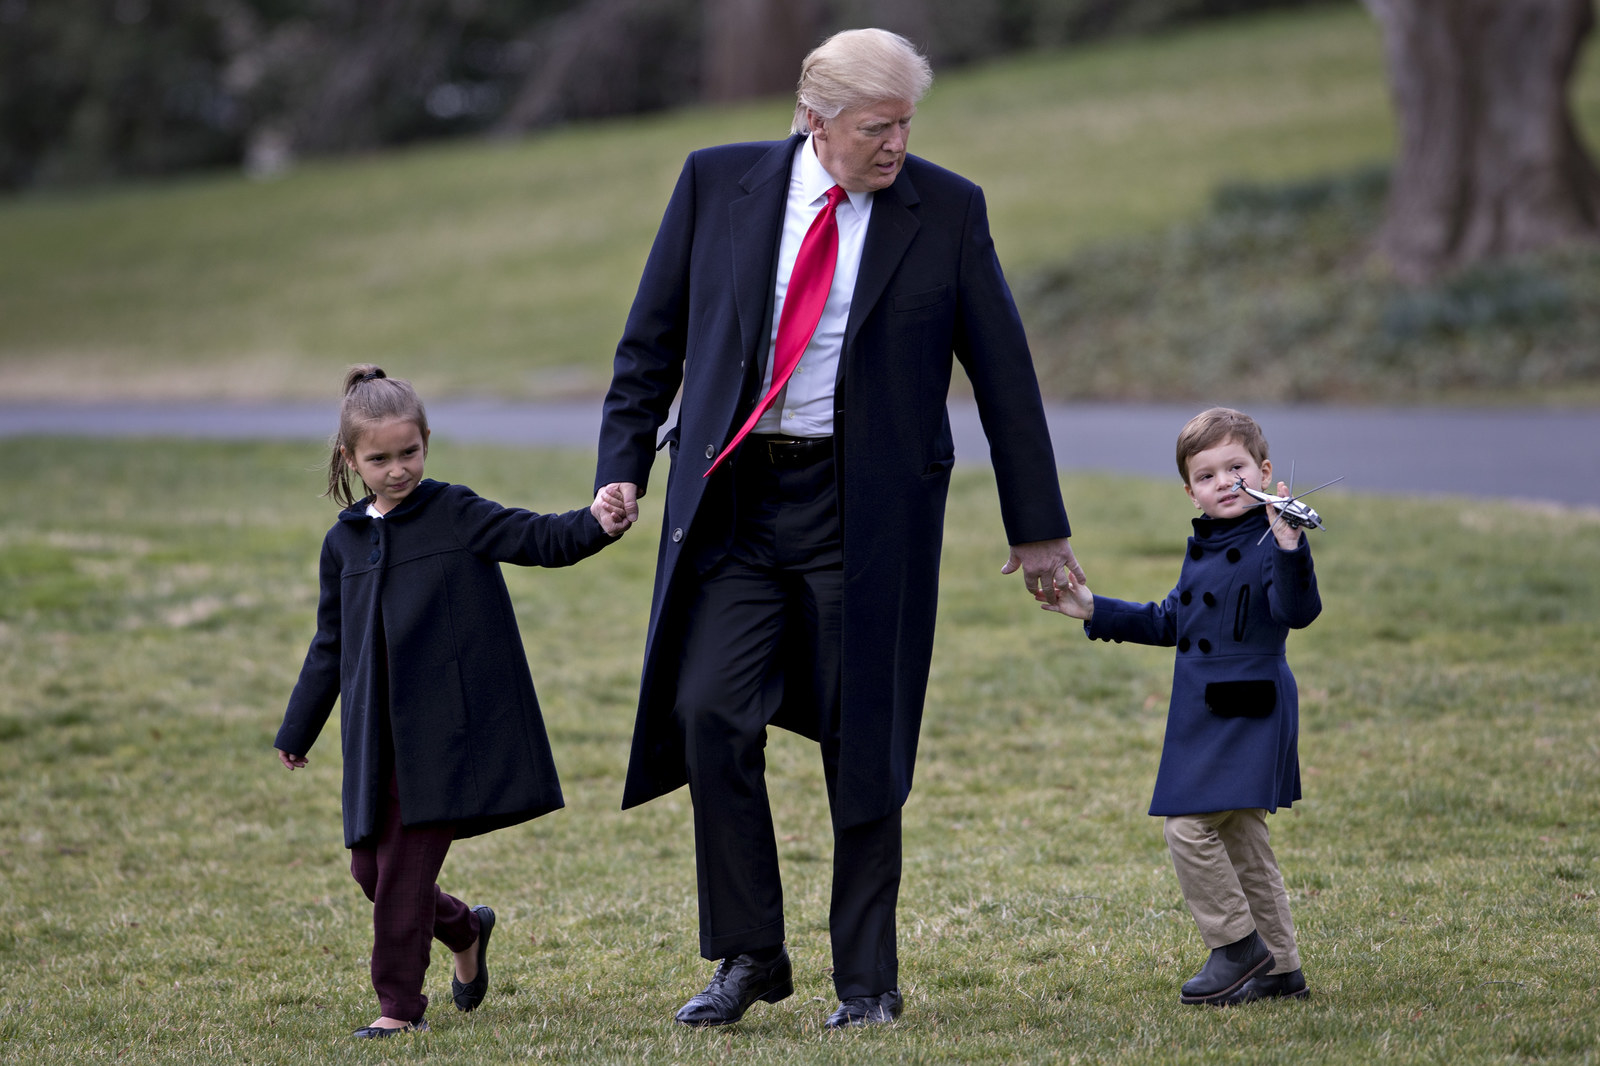 President Trump walks towards Marine One on the South Lawn of the White House with his grandchildren on March 3.